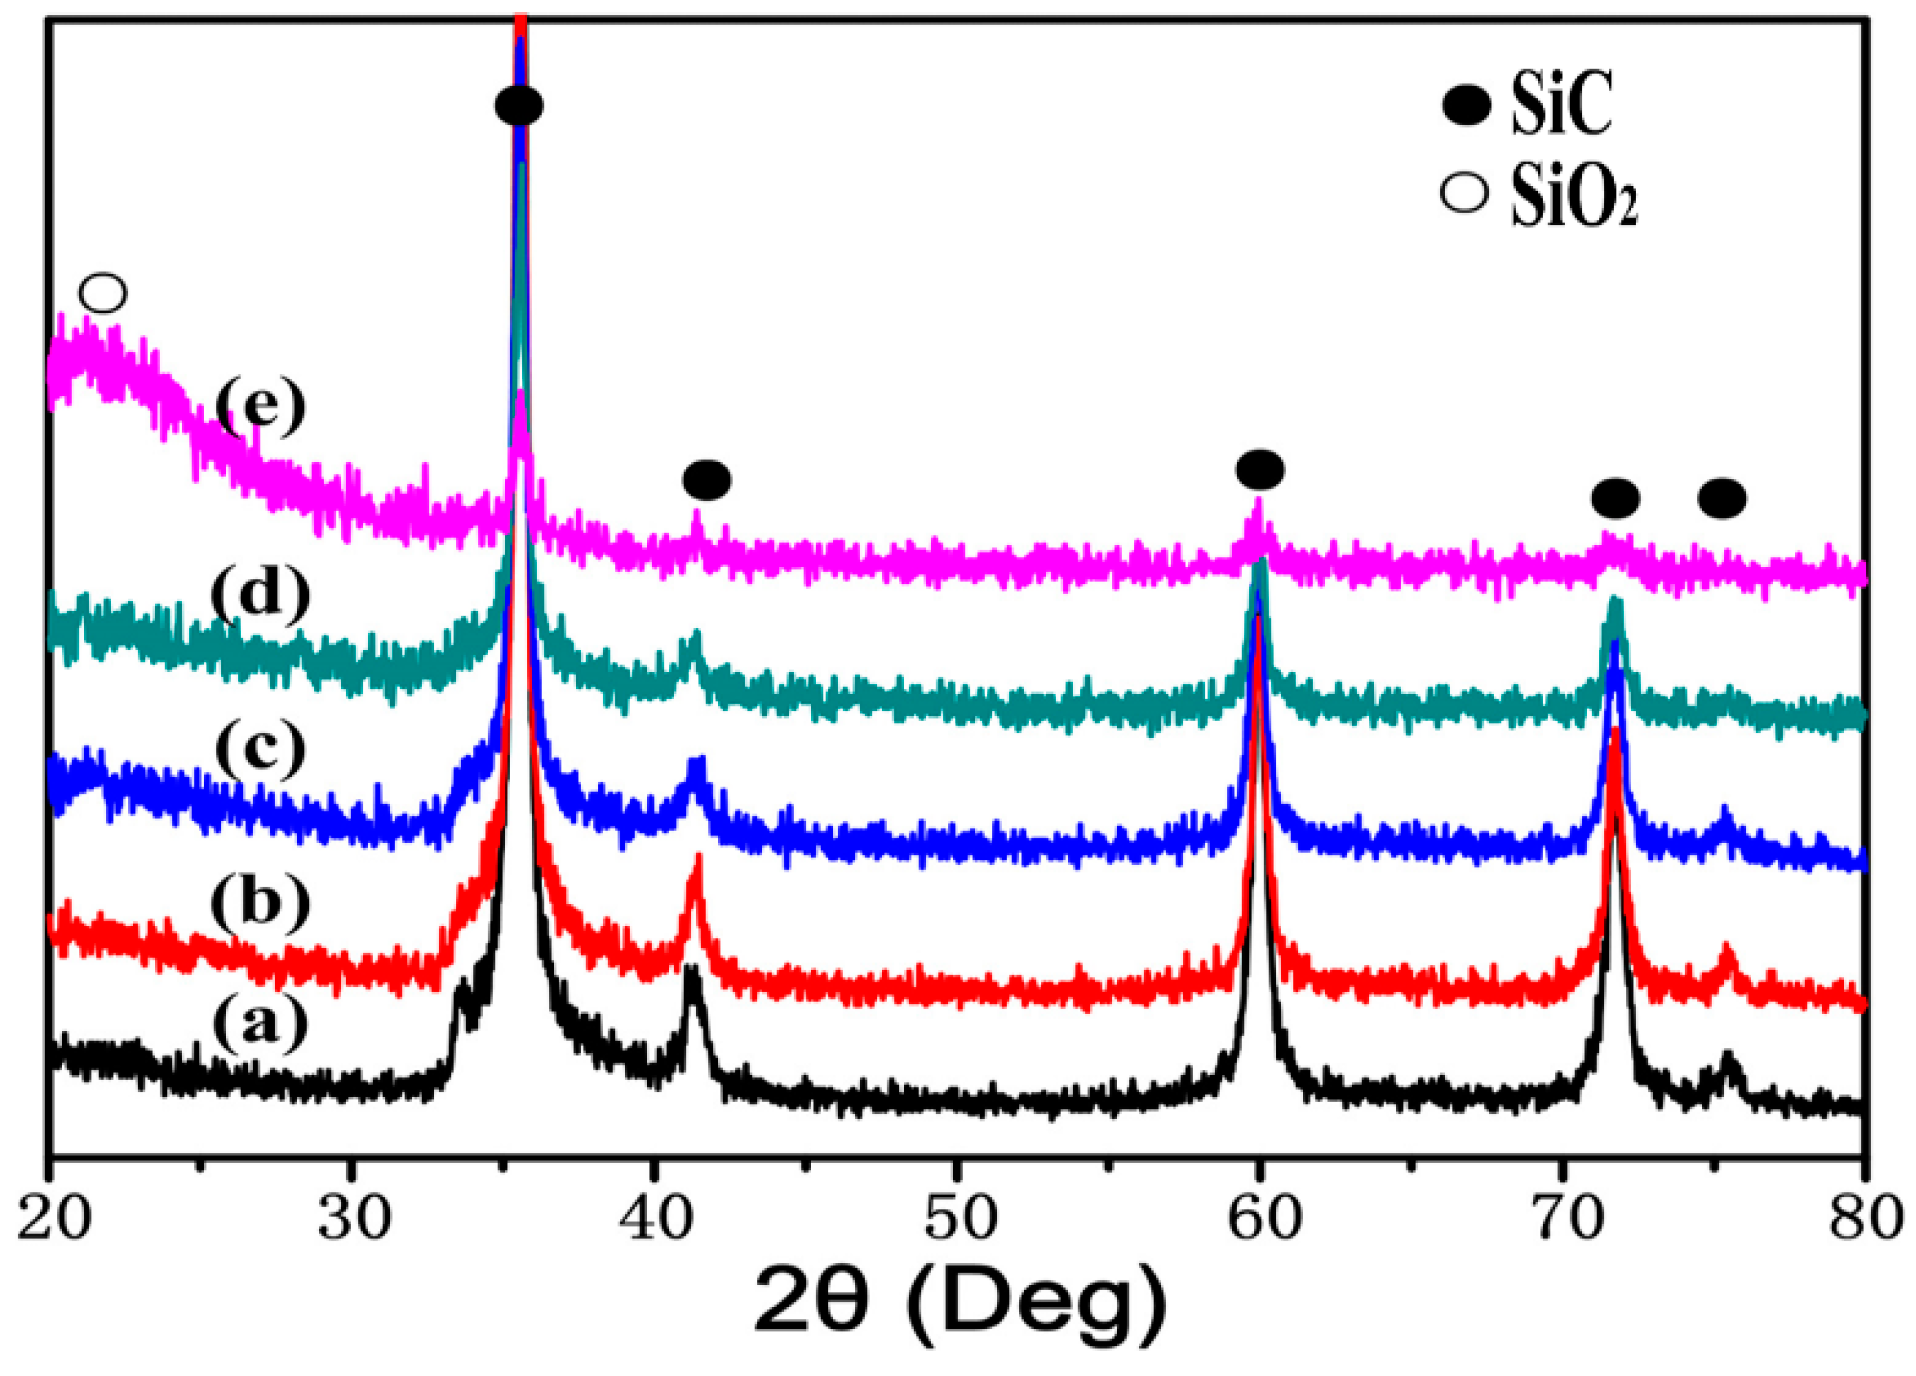 effect of nano sic particles on properties Effect of surfactants on the electrodeposition of ni-sic  nanosized particles, properties of the coating  mechanism of micro and nano-sic particles.